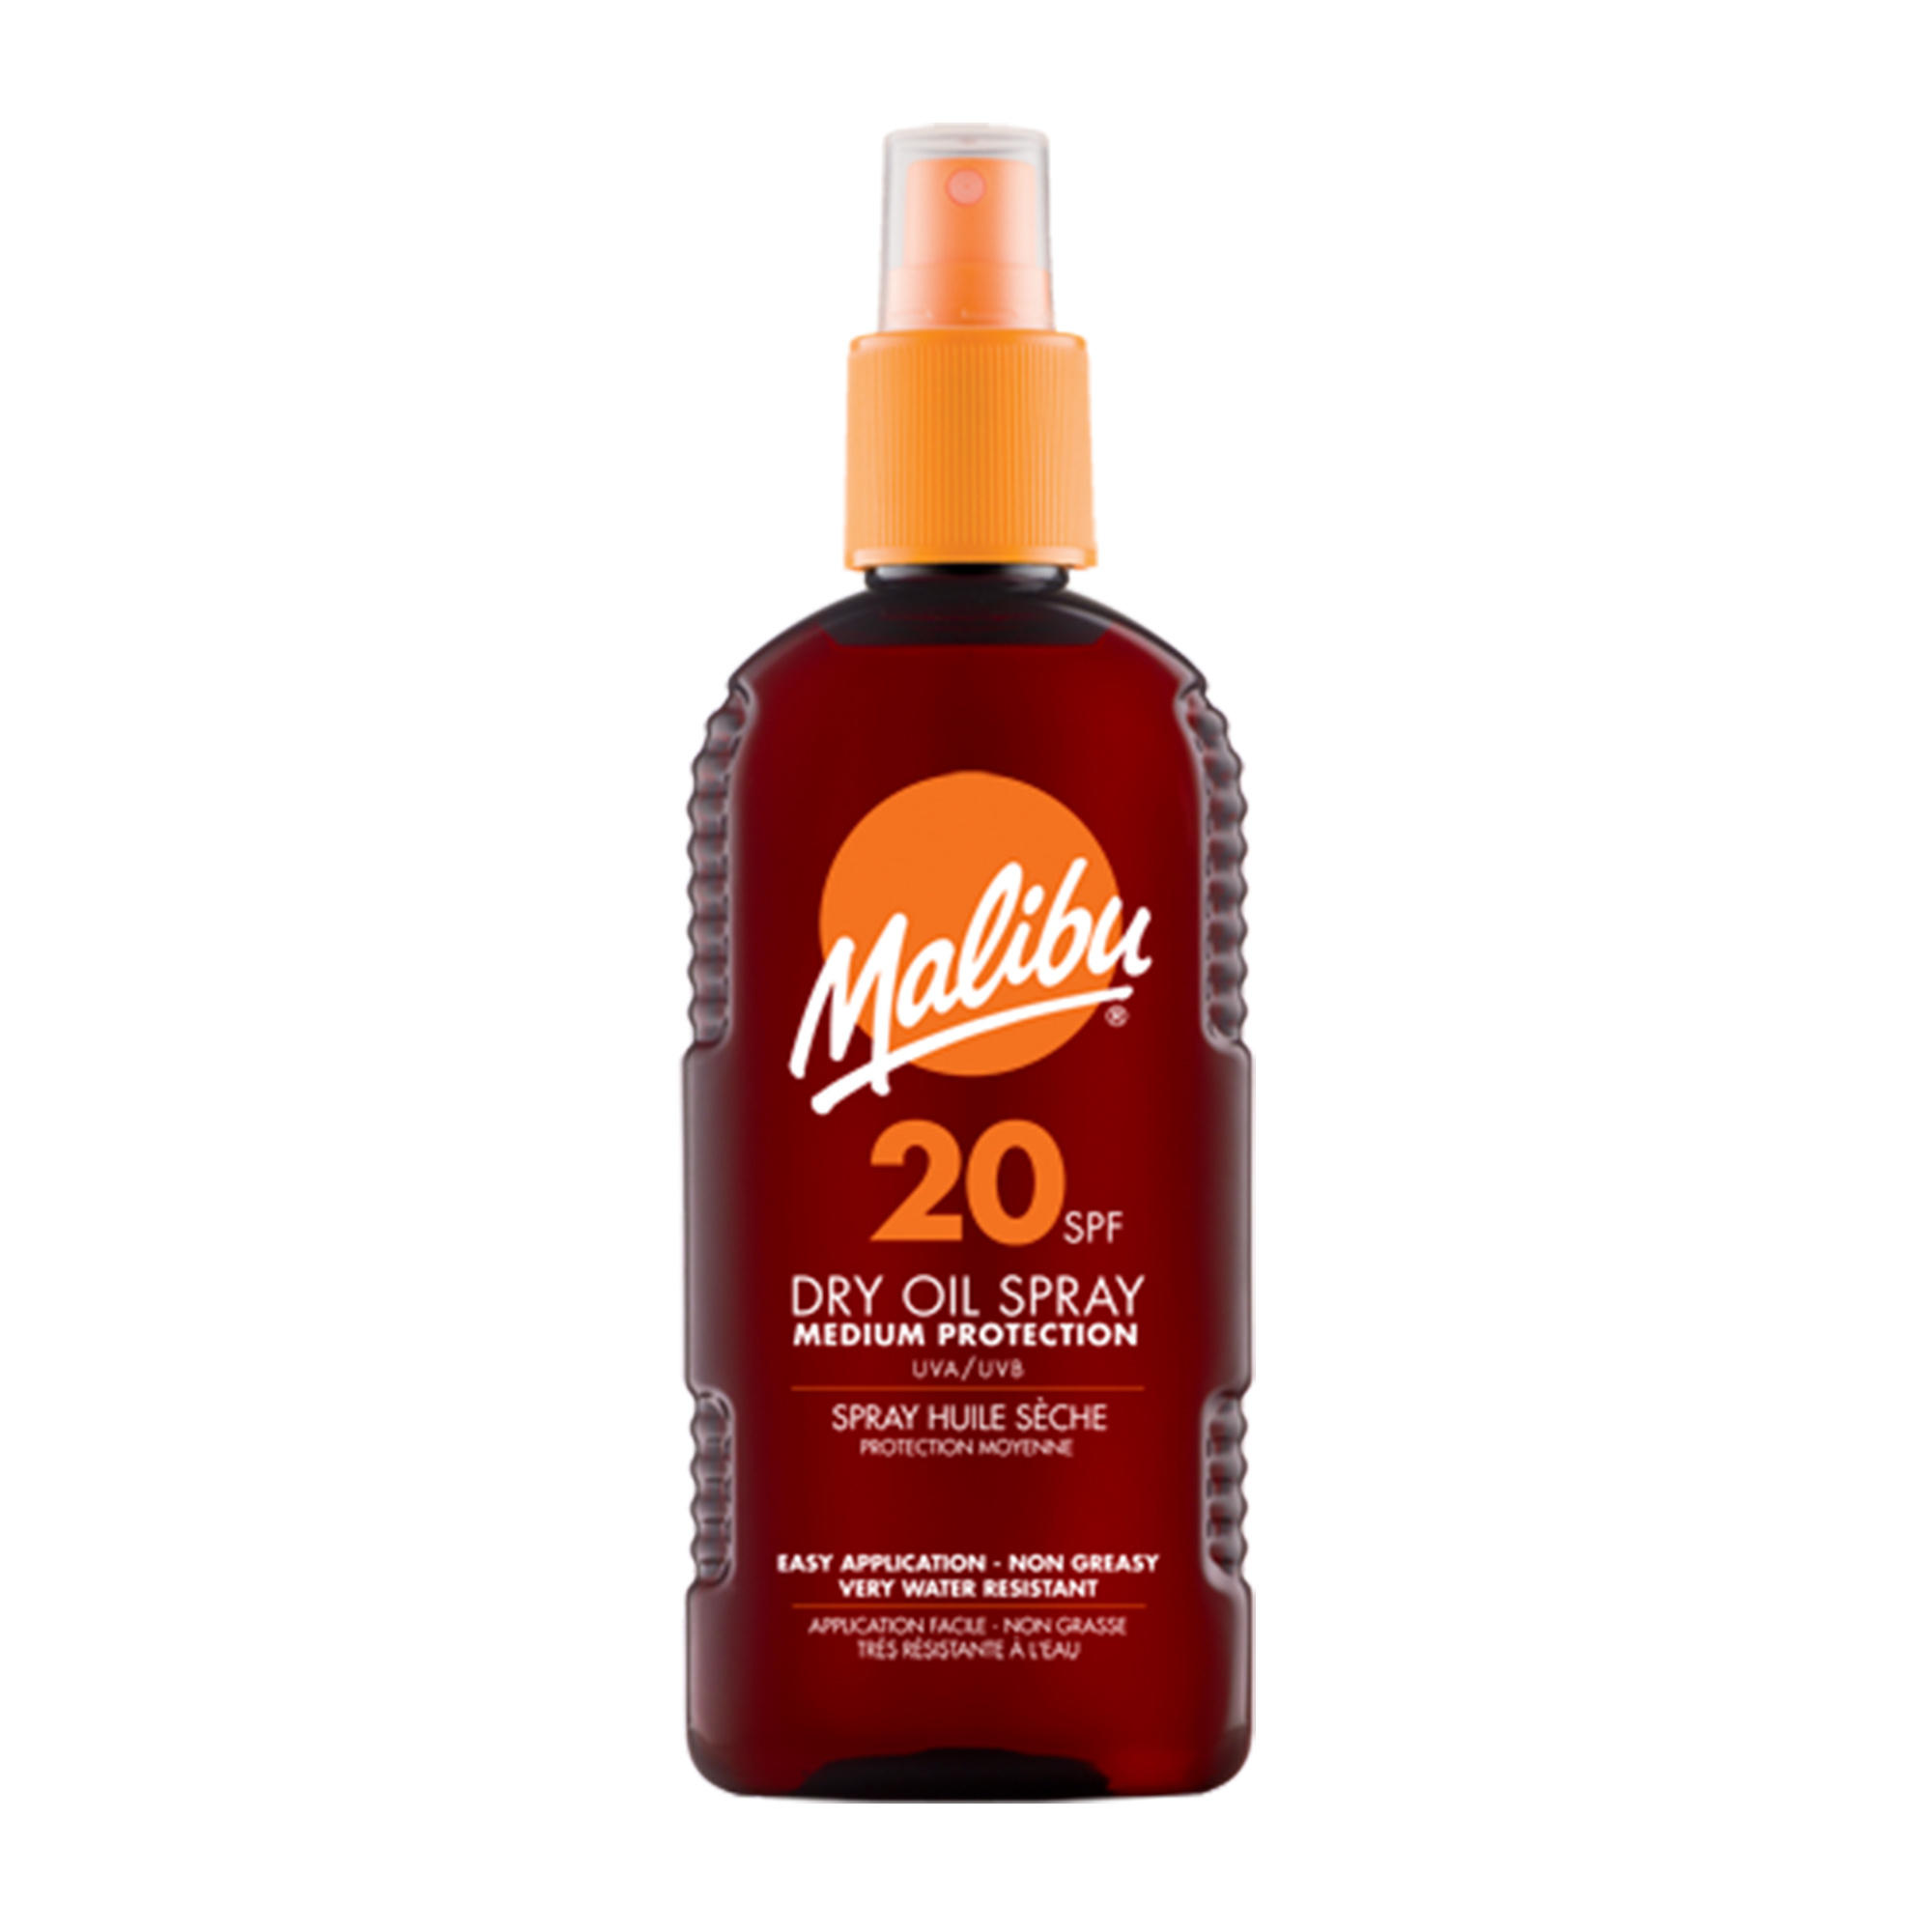 Malibu Dry Oil Spray SPF20